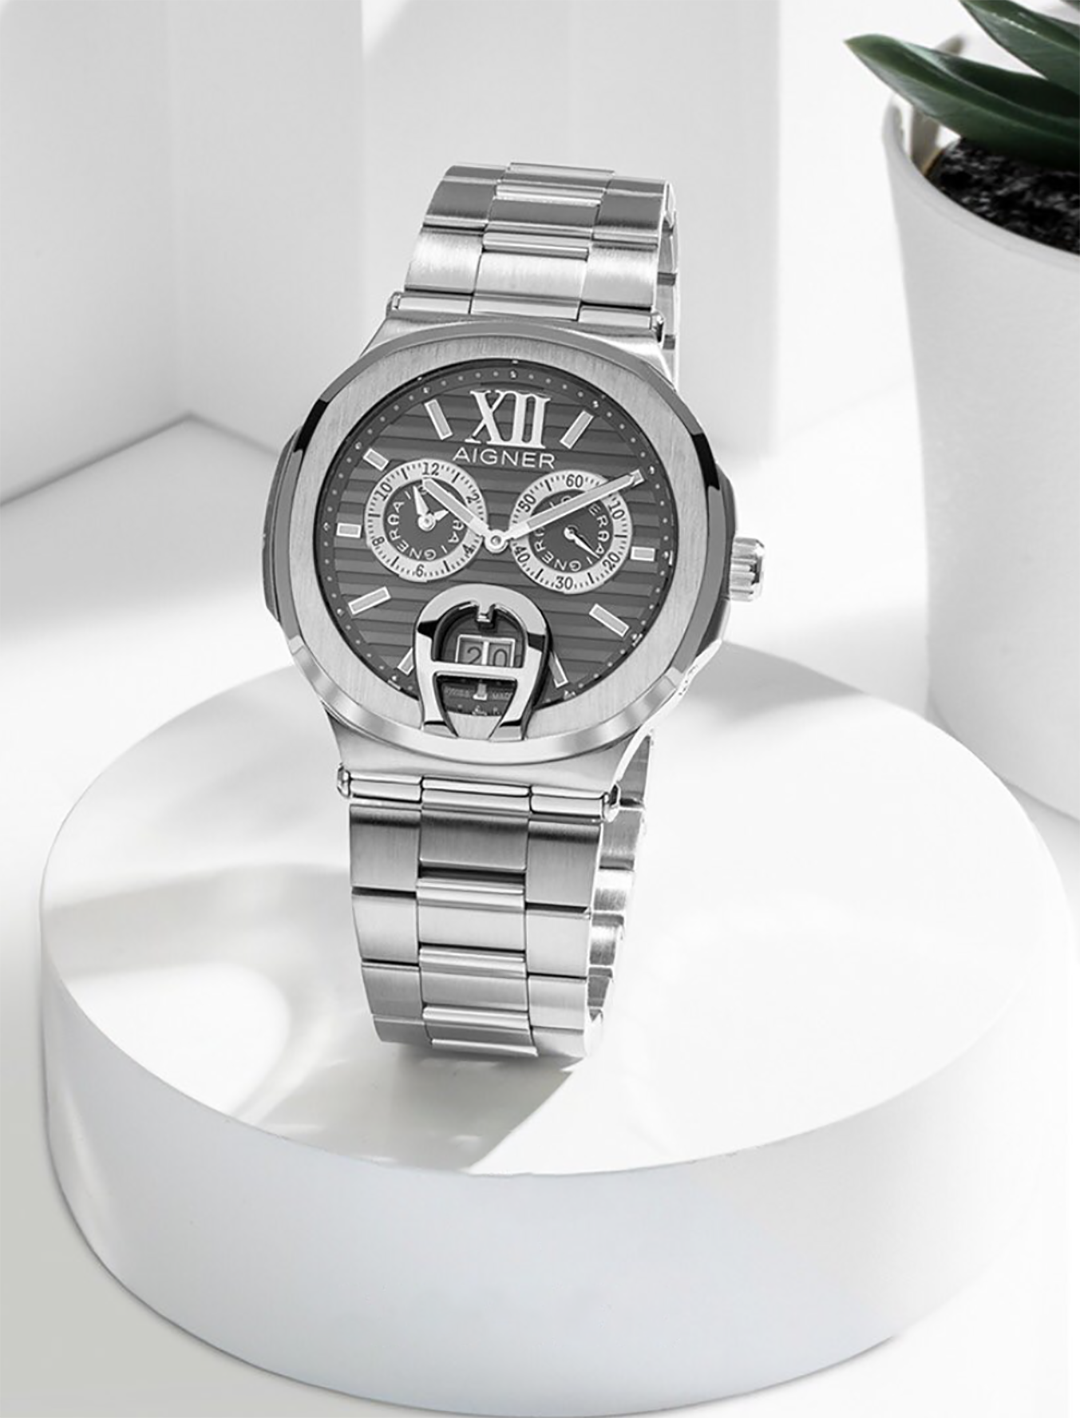 watch design aigner watch with grey dial and metal bracelet for gent